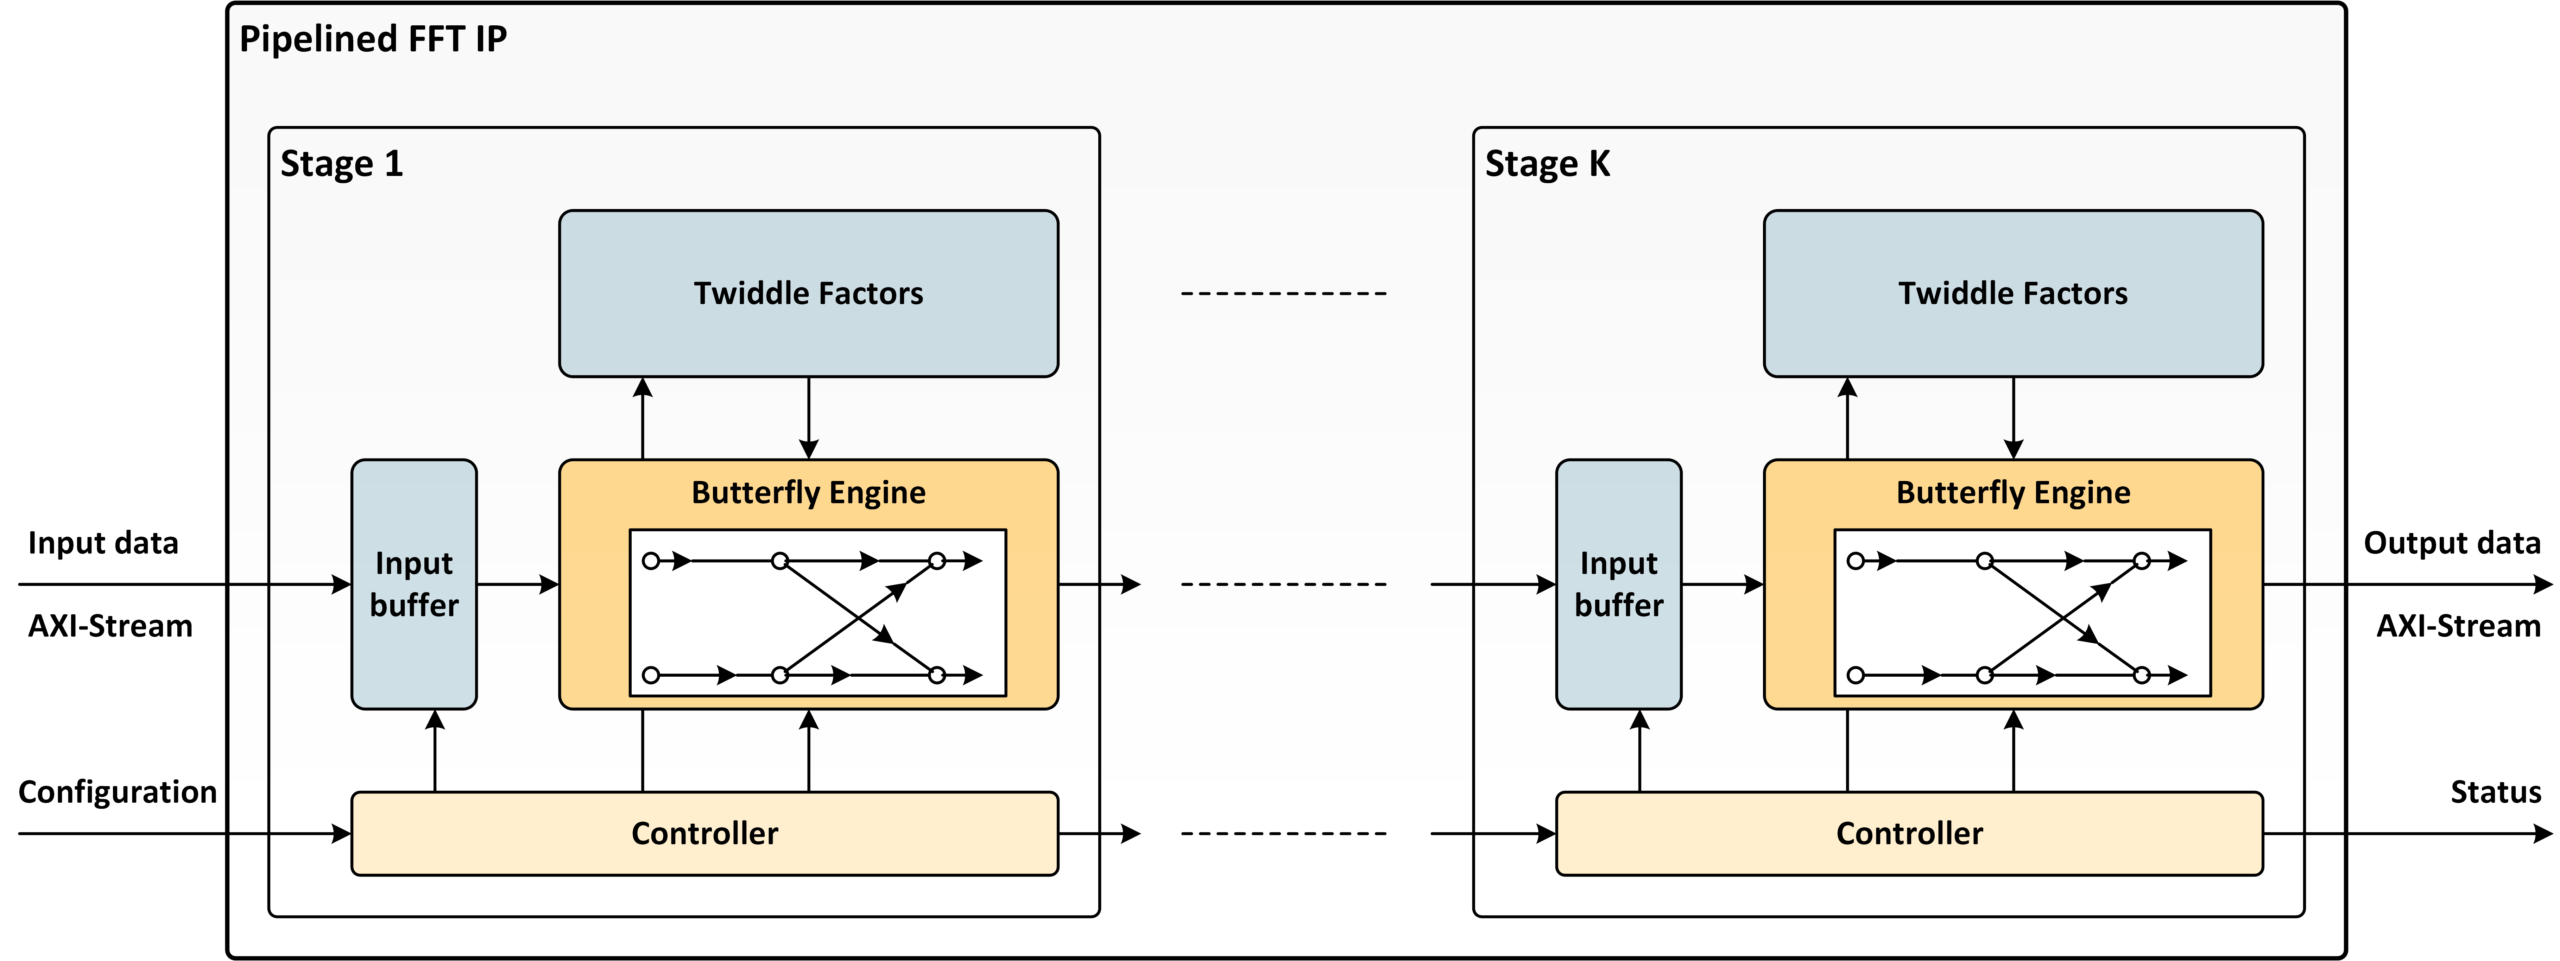 Pipelined FFT Block Diagram